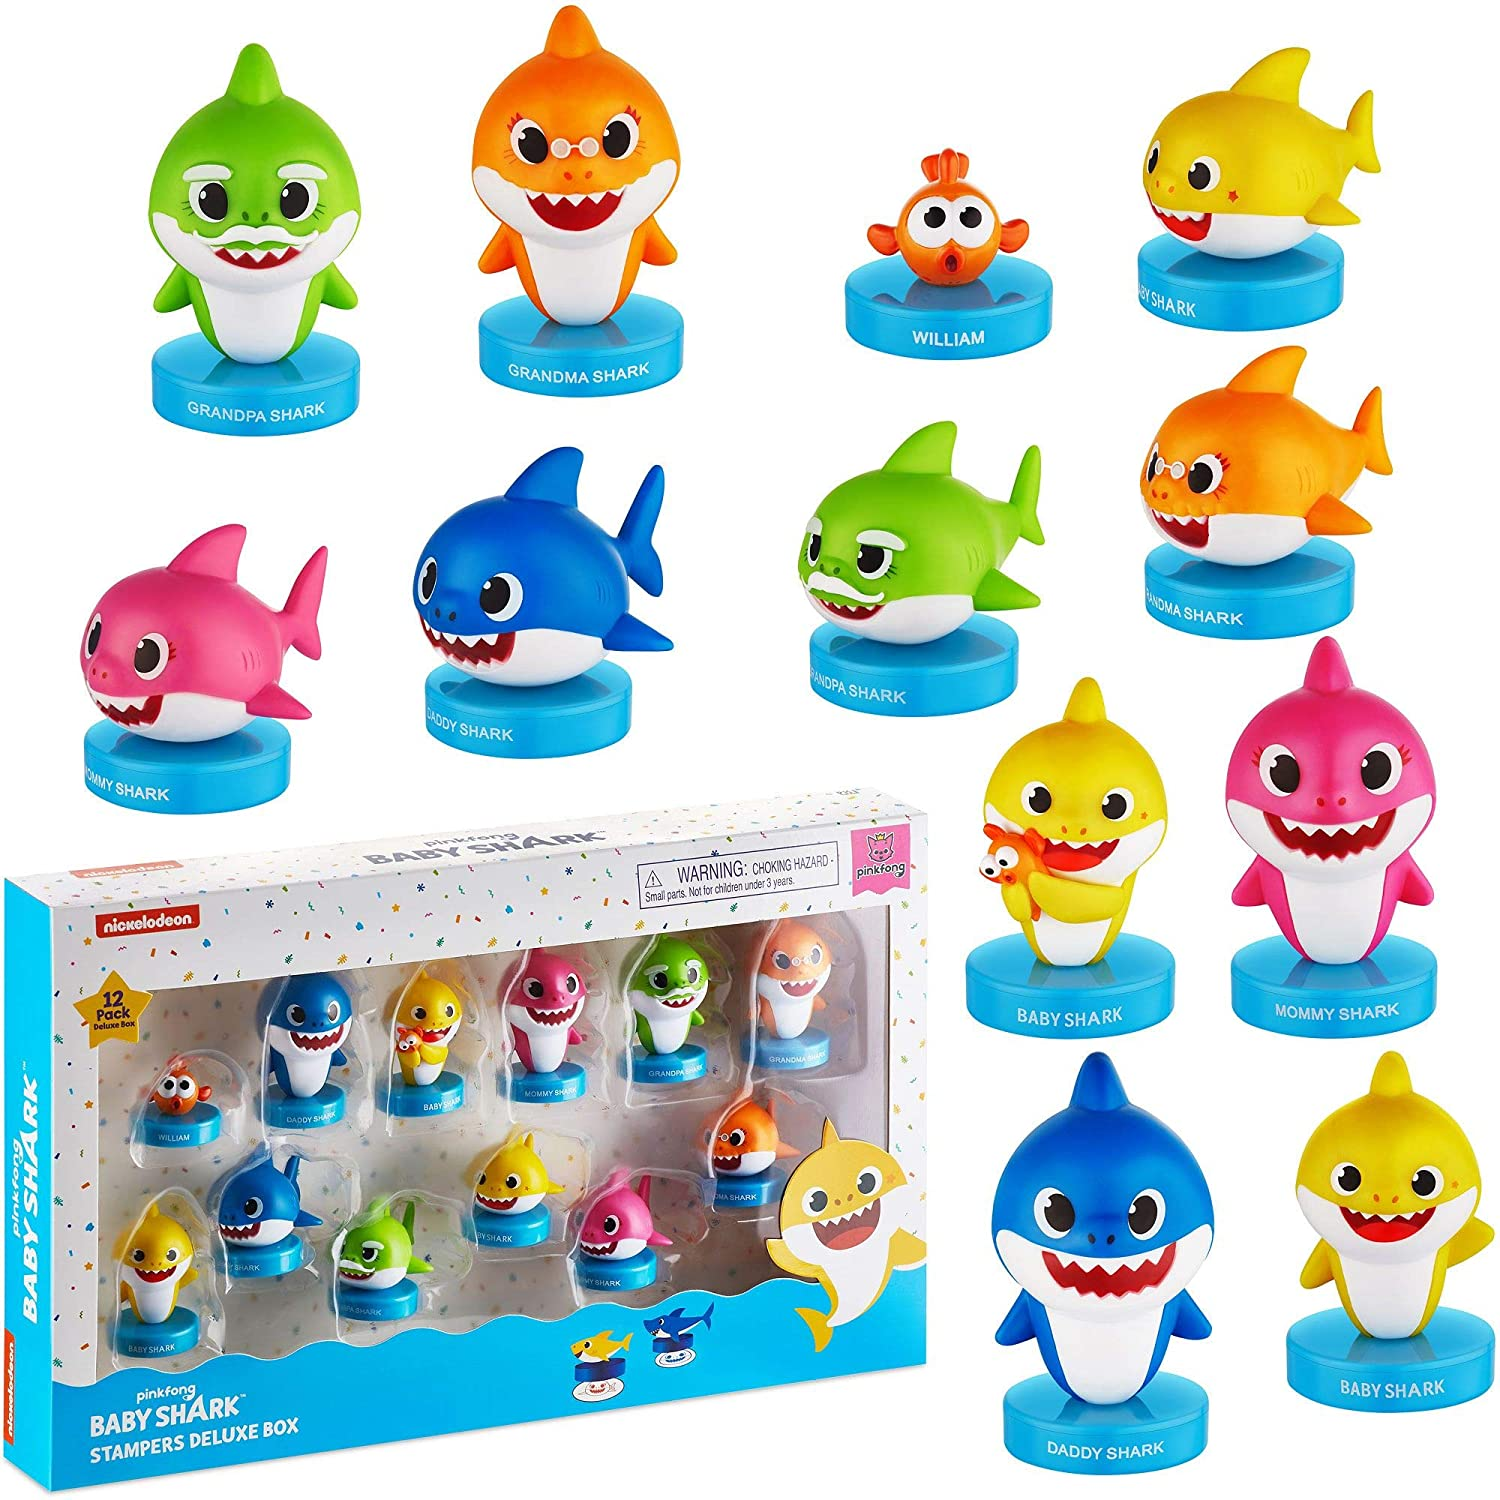 Baby Shark Stampers, 12 Pack – Self-Inking Baby Shark Toys, Action Figures, Party Decor, Cake Toppers – Parent, Baby, Grandparent Sharks and William by PMI, 2.4 in., Soft PVC